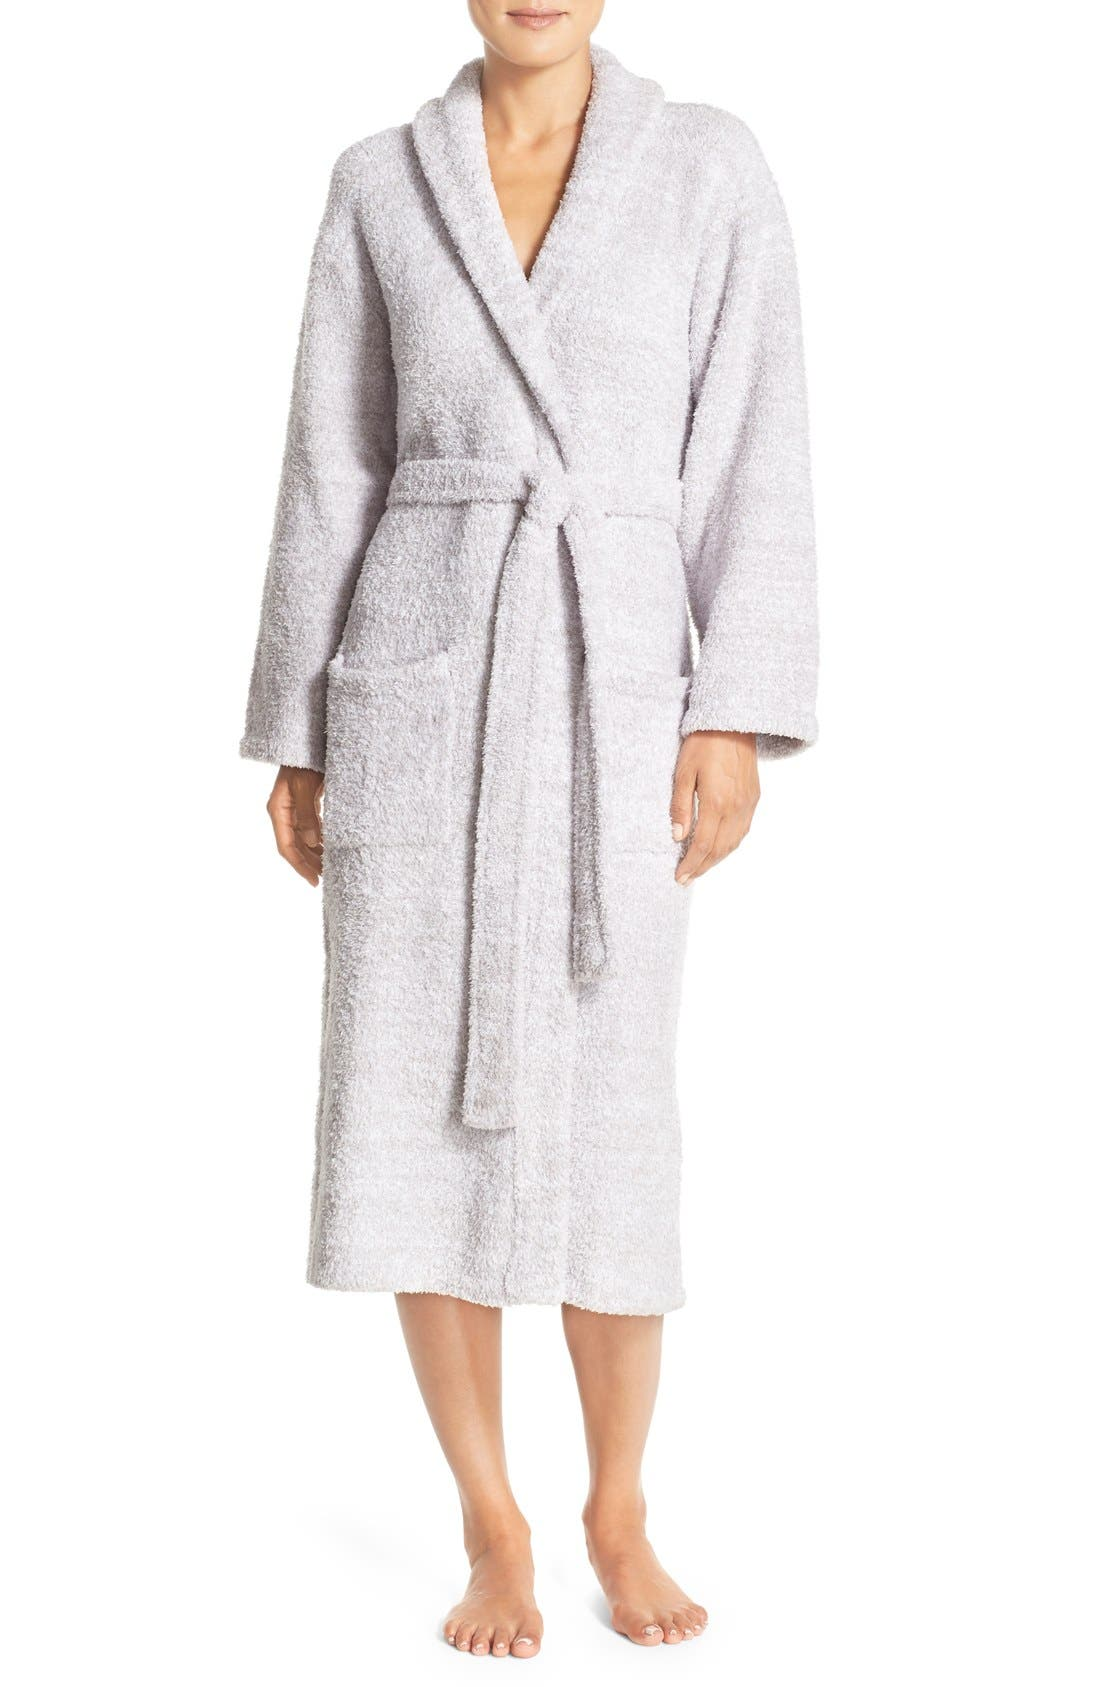 CozyChic<sup>®</sup> Robe, Main, color, LIGHT GRAY/ WHITE